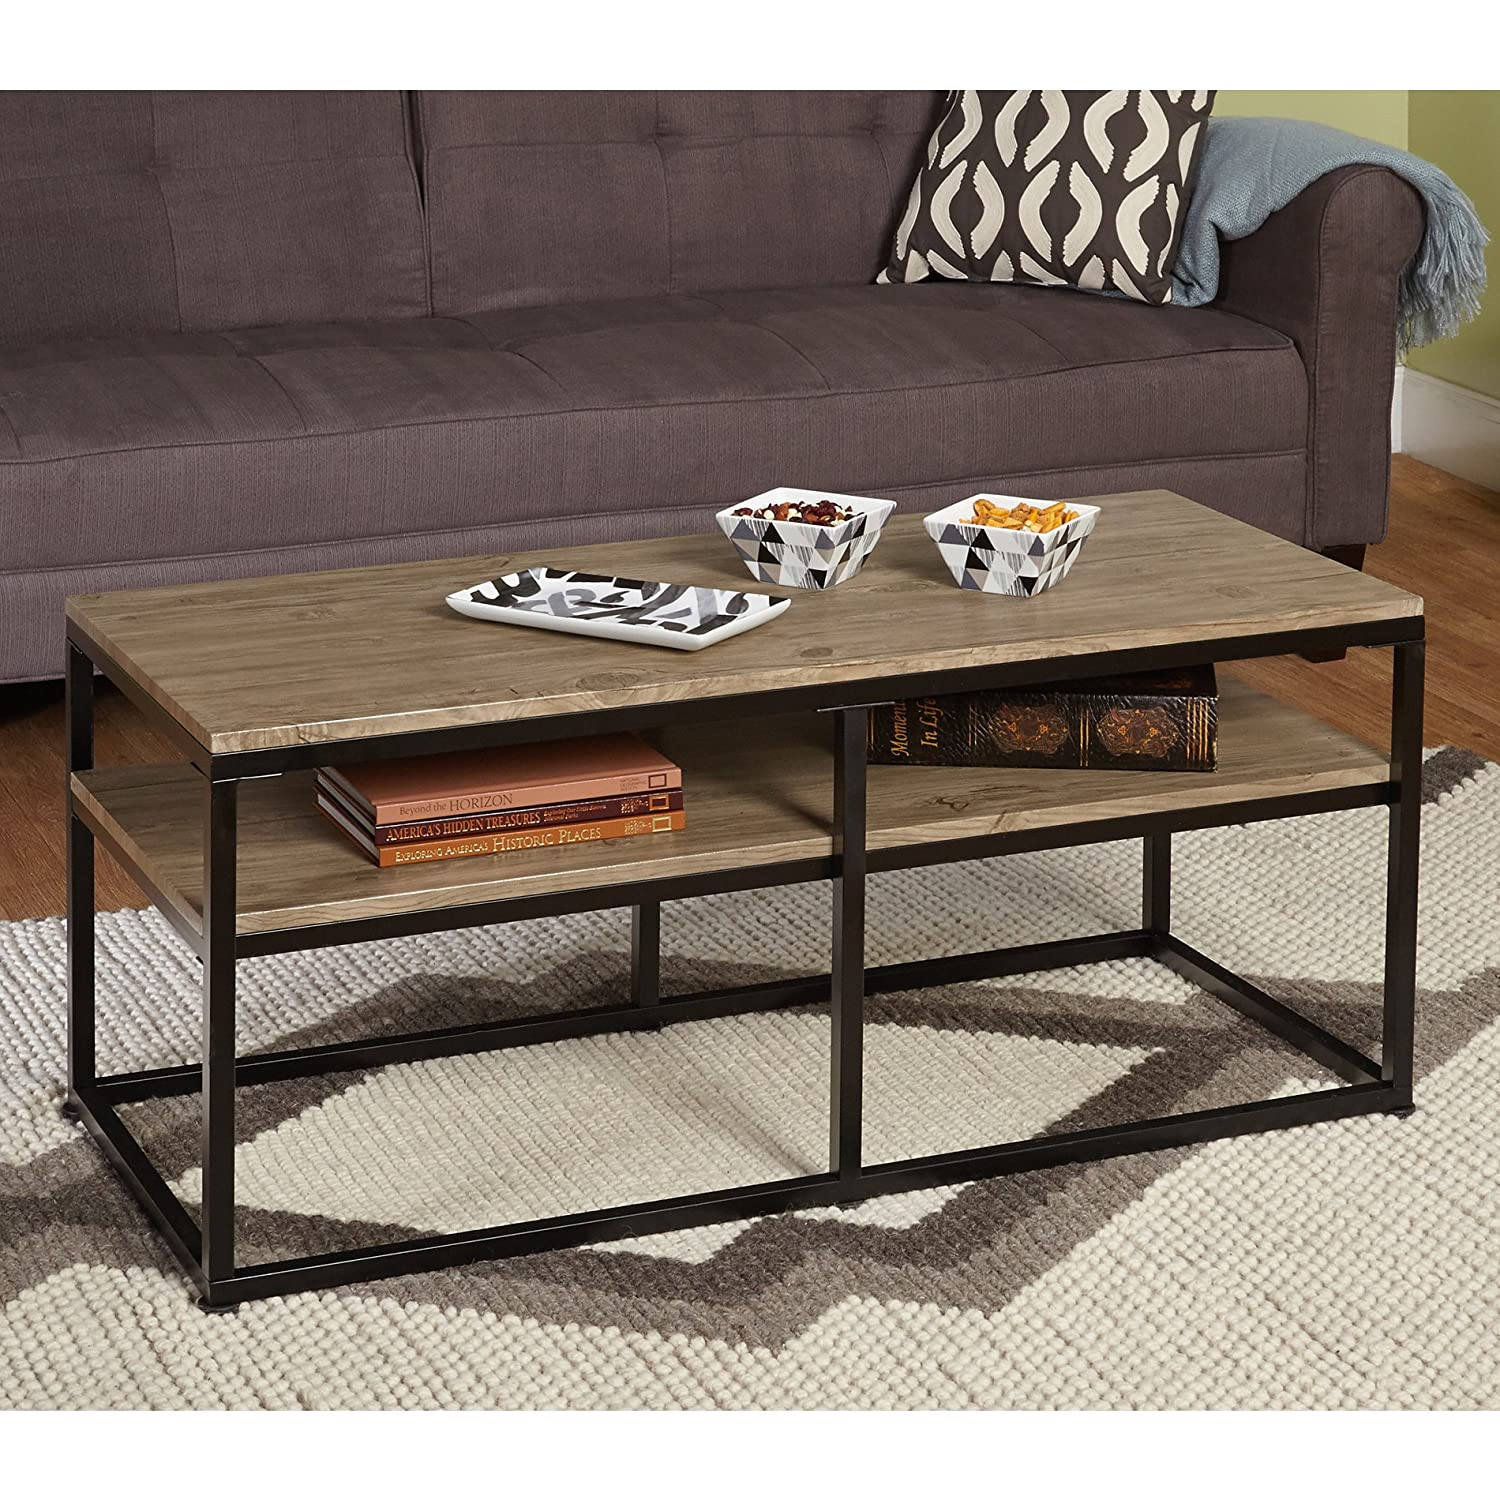 Amazon simple living modern rectangular accent coffee table amazon simple living modern rectangular accent coffee table with black metal frames and reclaimed wood look finish top for living room guest room geotapseo Image collections